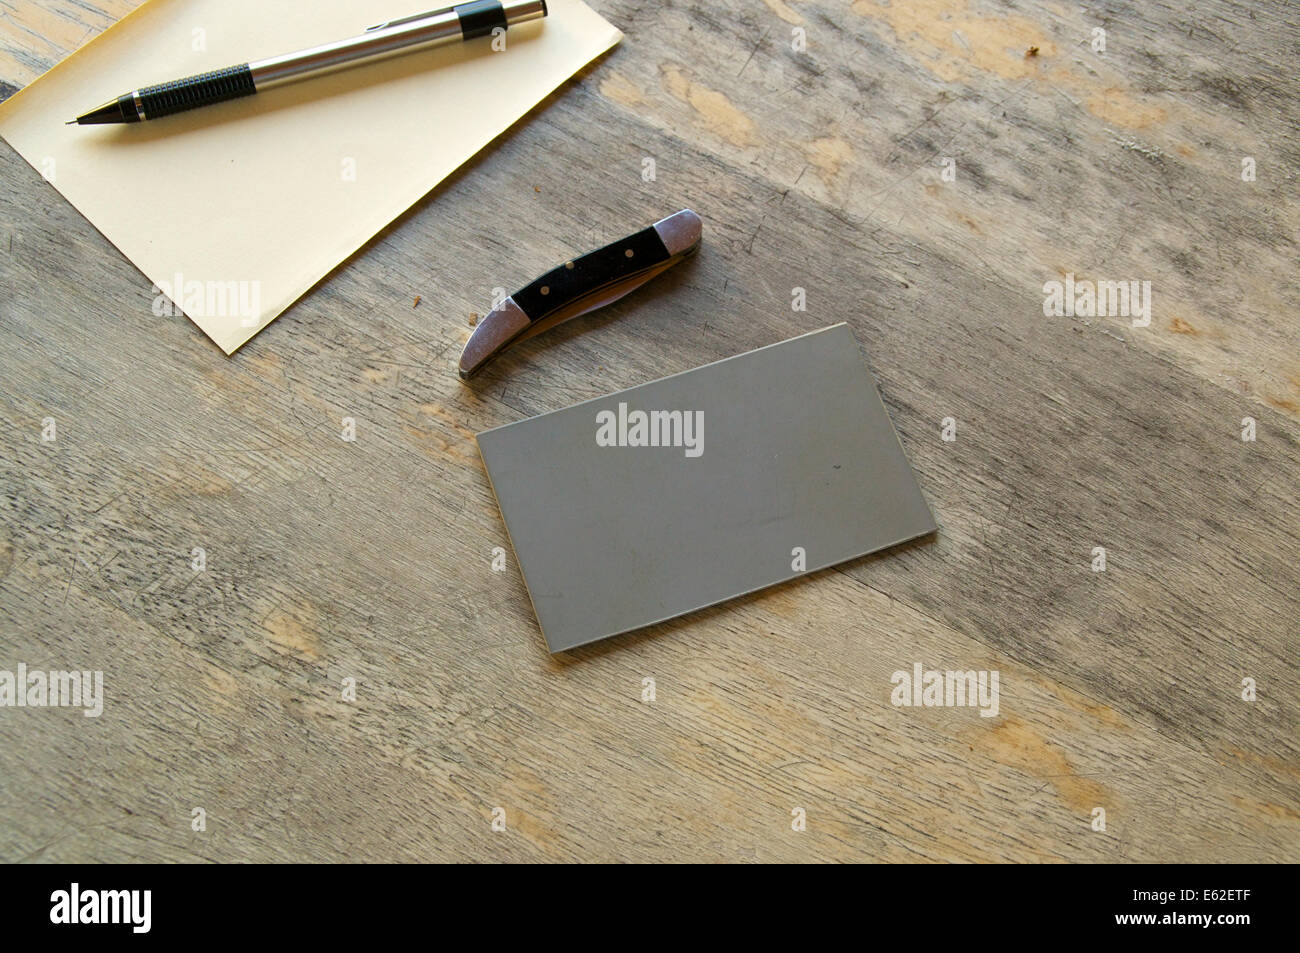 A pencil, paper, knife and grey card are seen on an old wooden table. Stock Photo